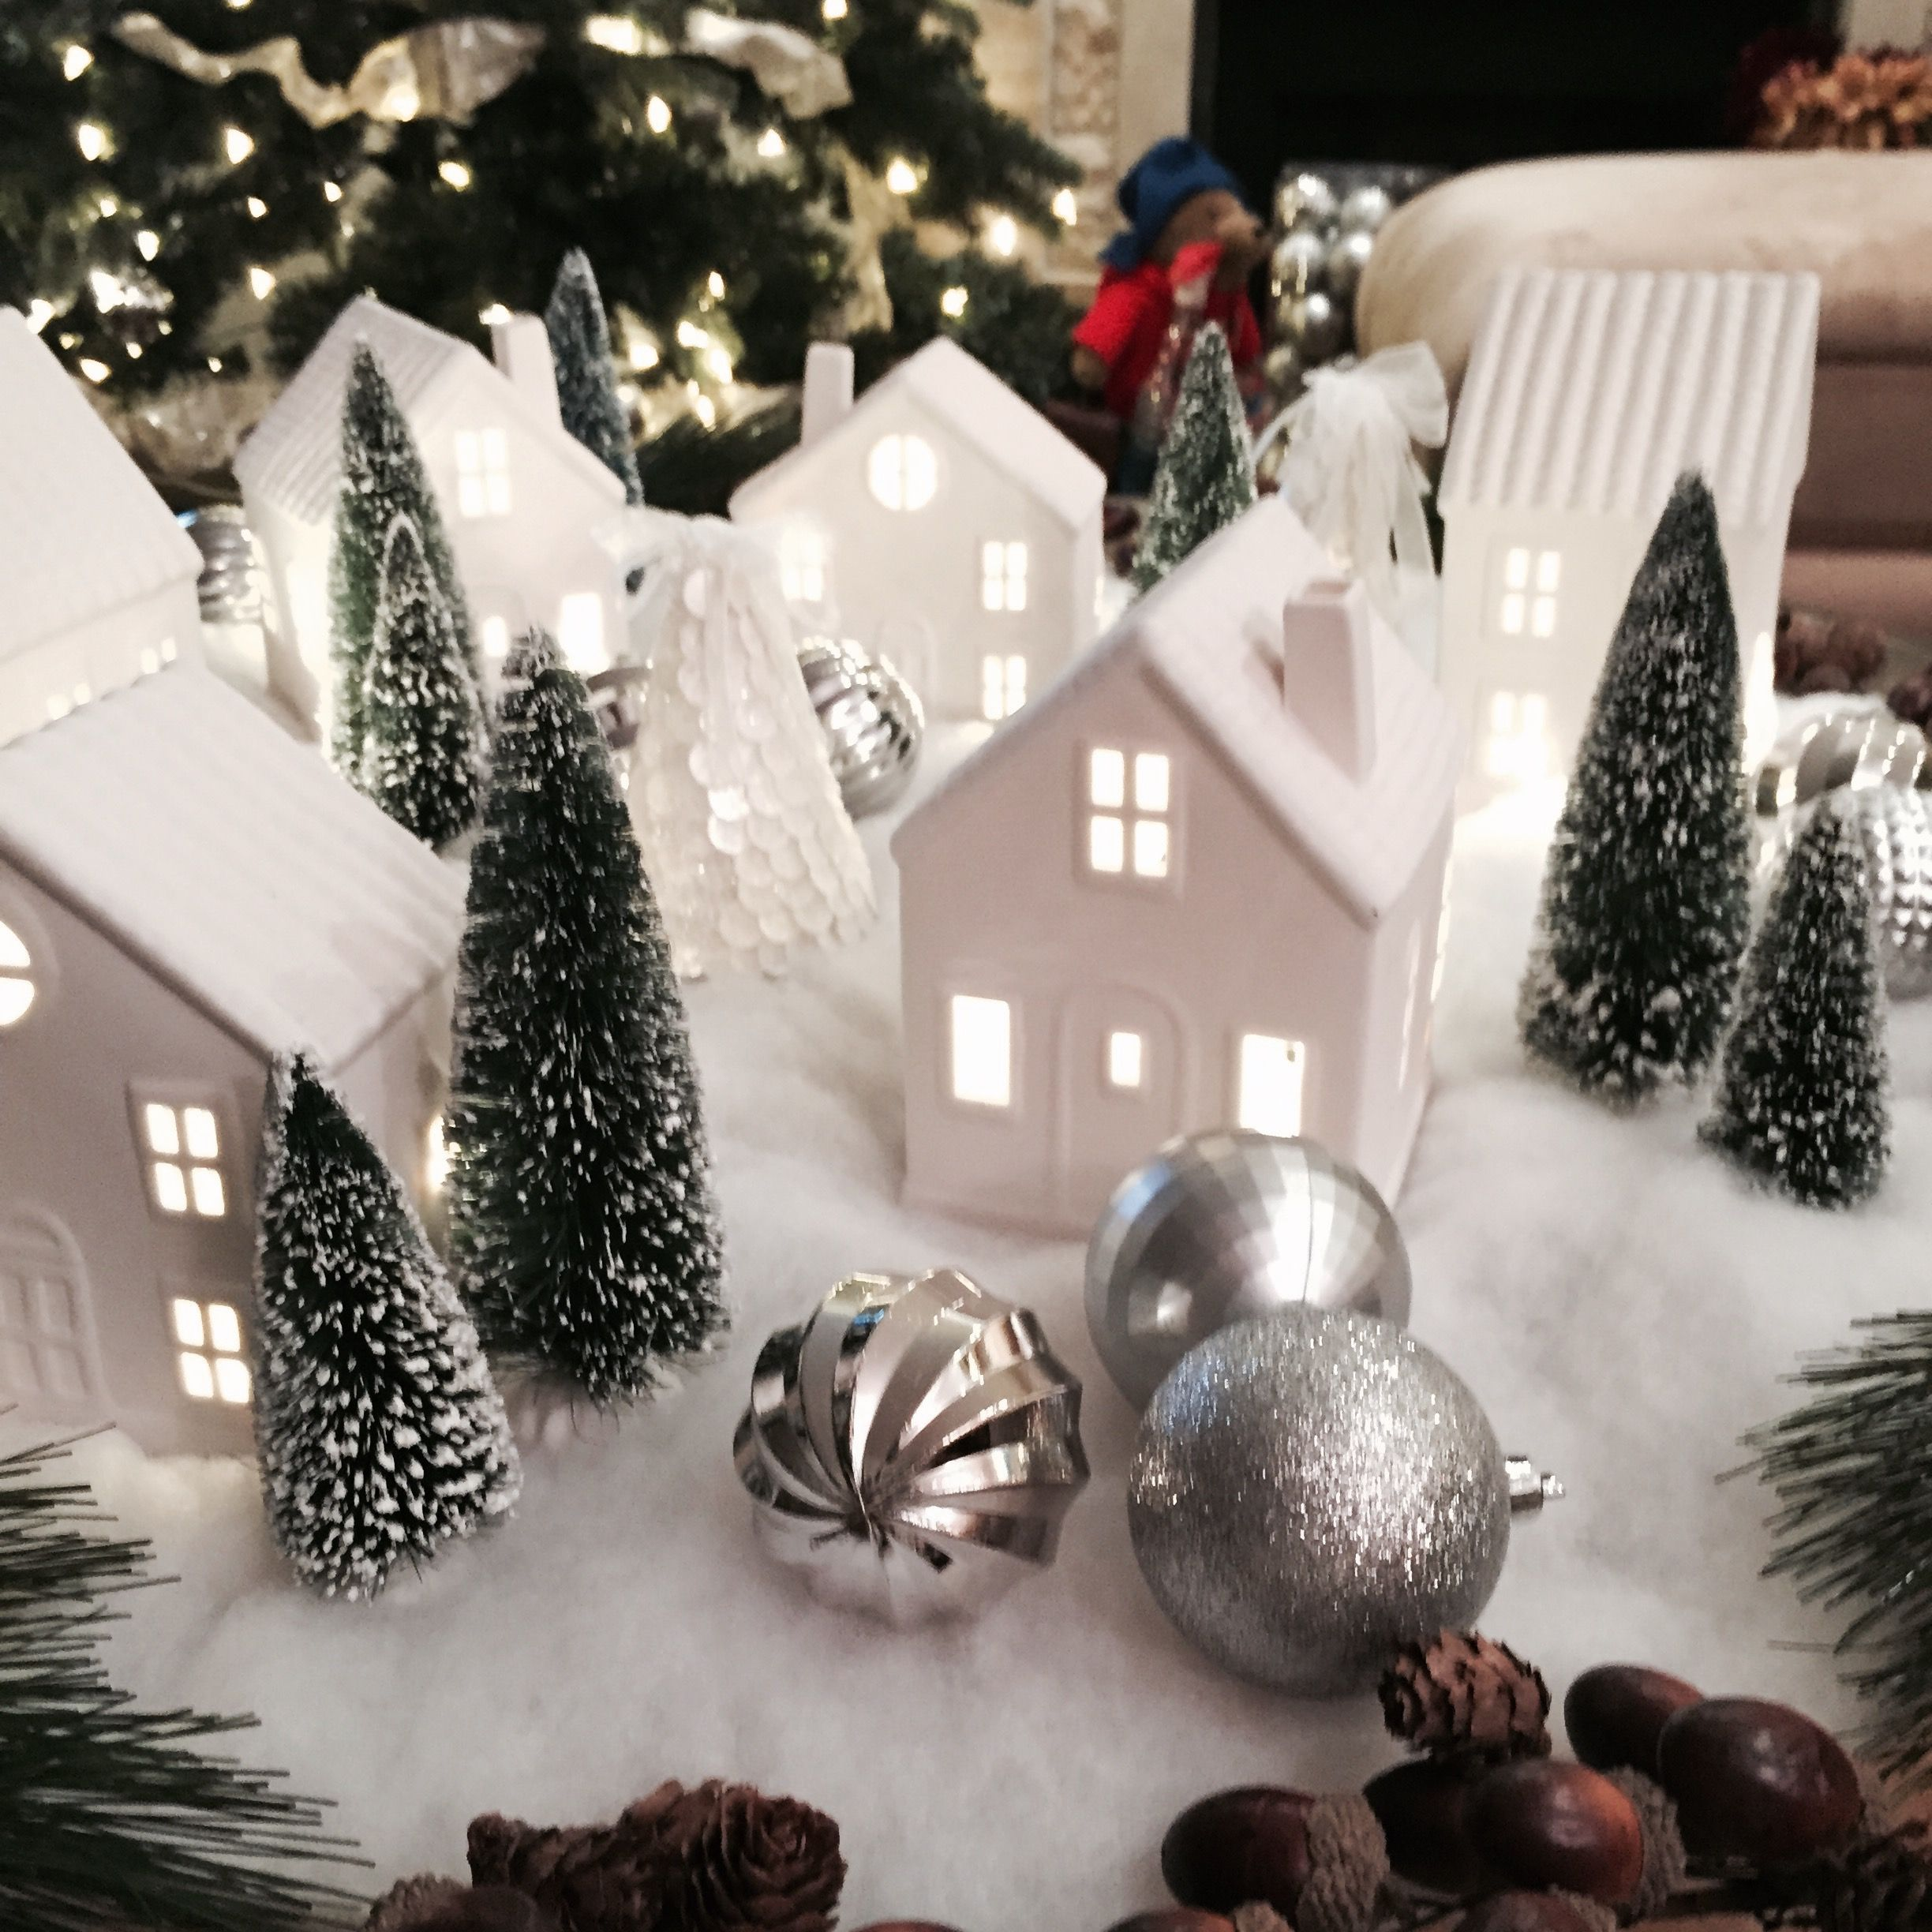 Target dollar spot houses 3, trees and ornament from